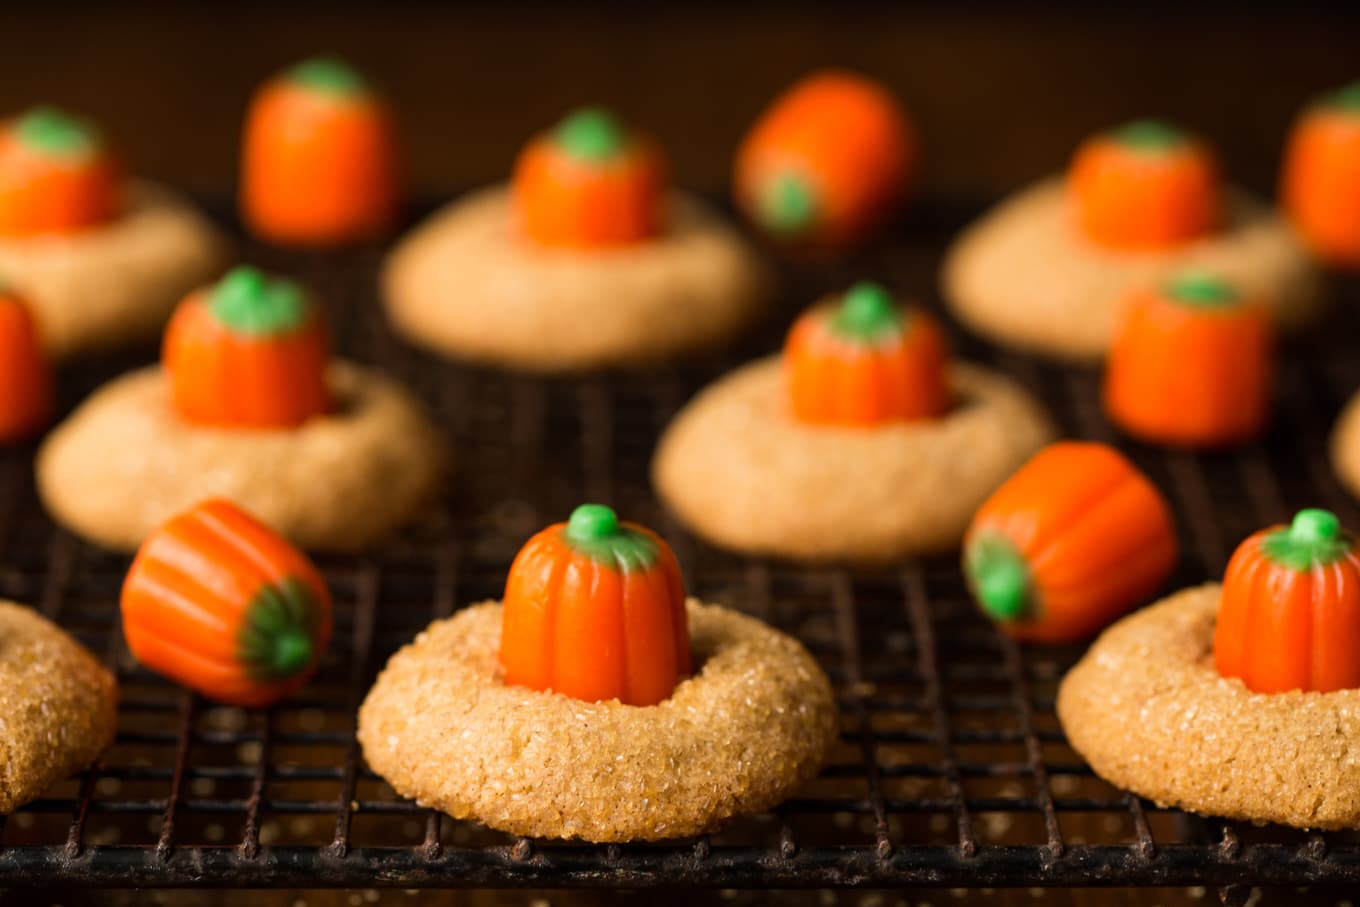 Need a delicious, sweet snack for an autumn party or a Halloween celebration? These Pumpkin Shortbread Cookies are the perfect, delicious solution!